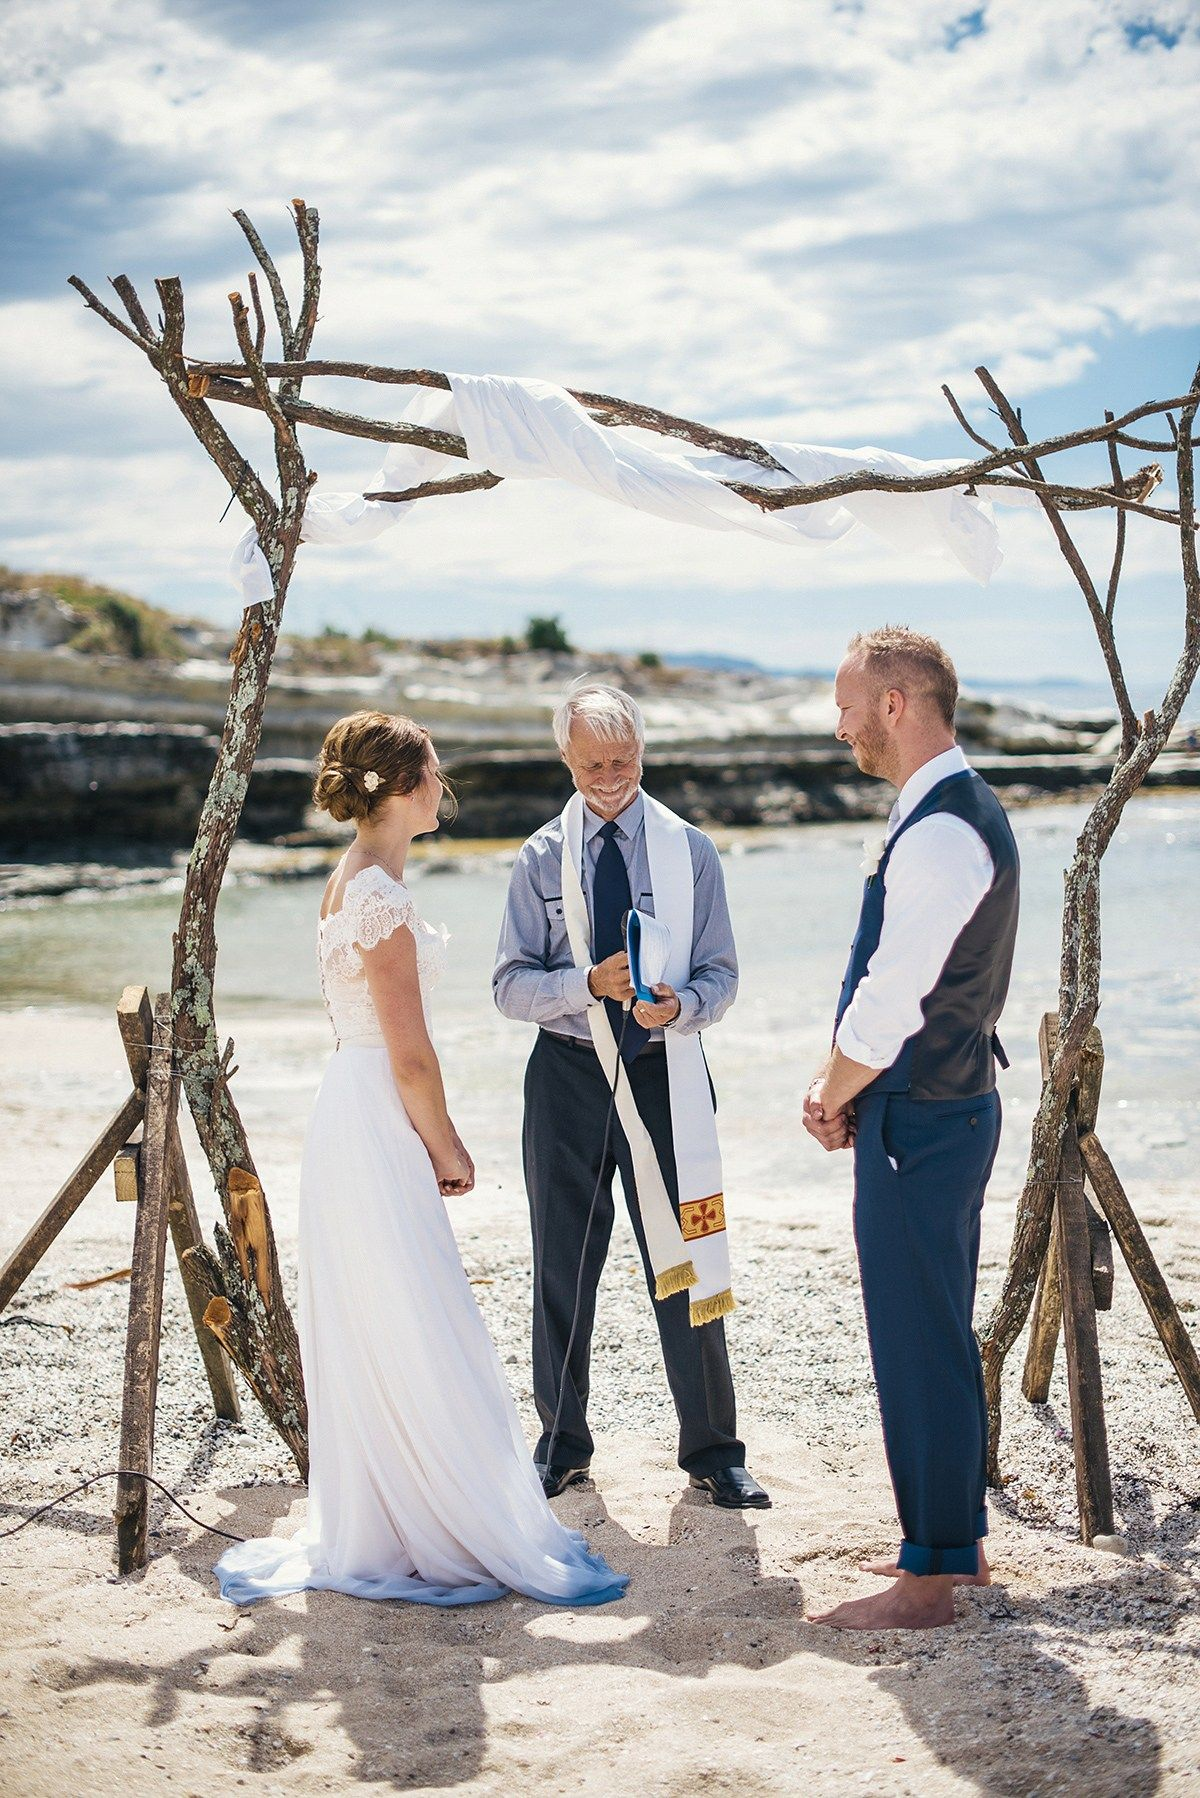 A beautiful blue ombre wedding dress for a barefoot beach wedding in